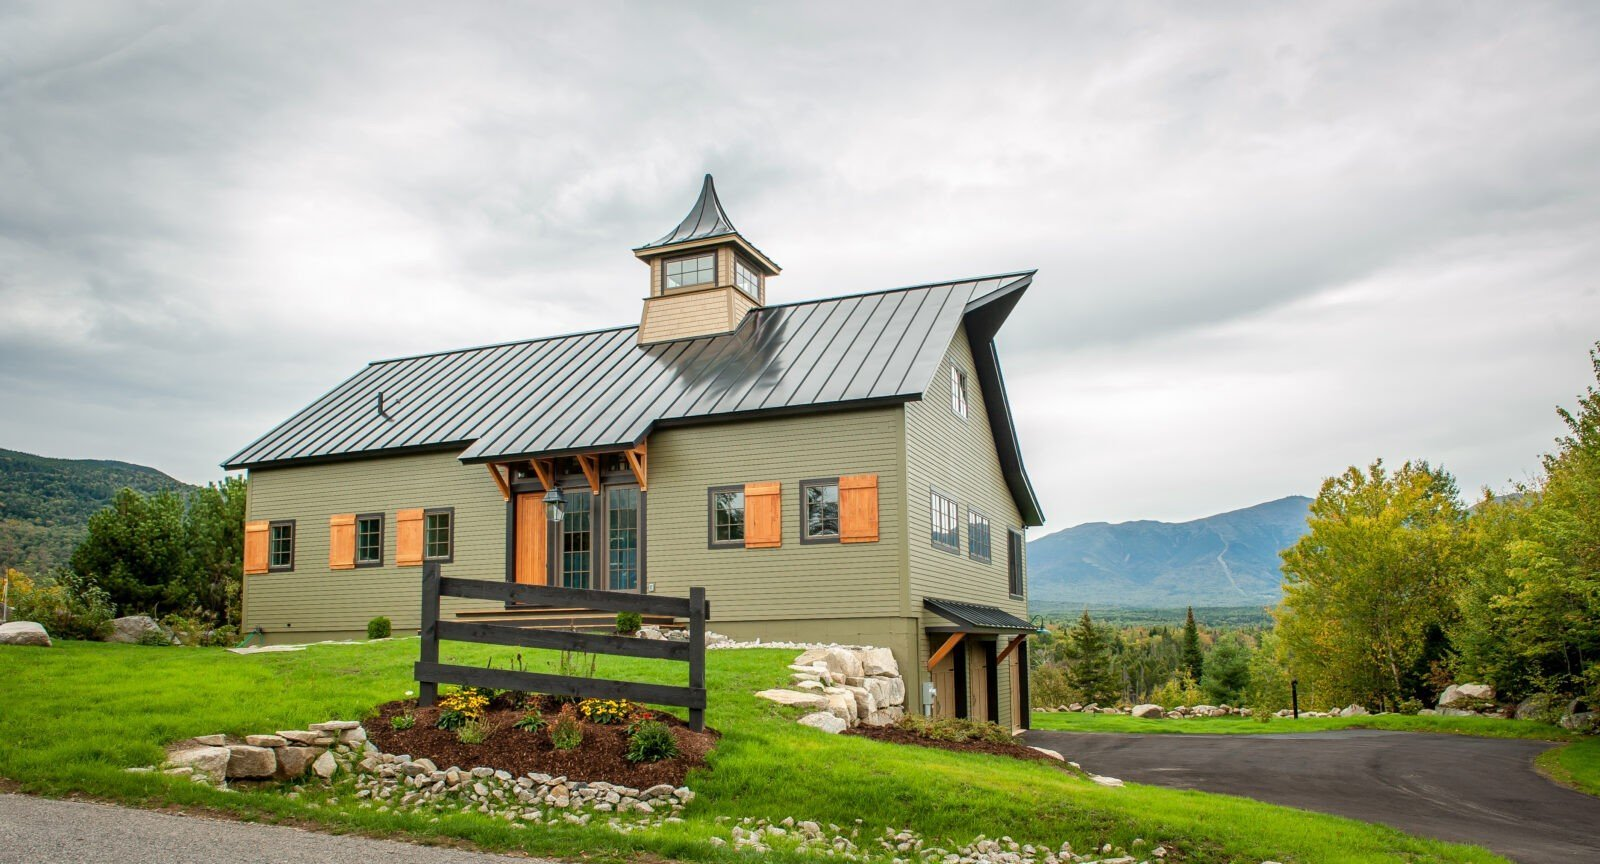 Top notch barn home plans from the ybh design team for Kit build homes